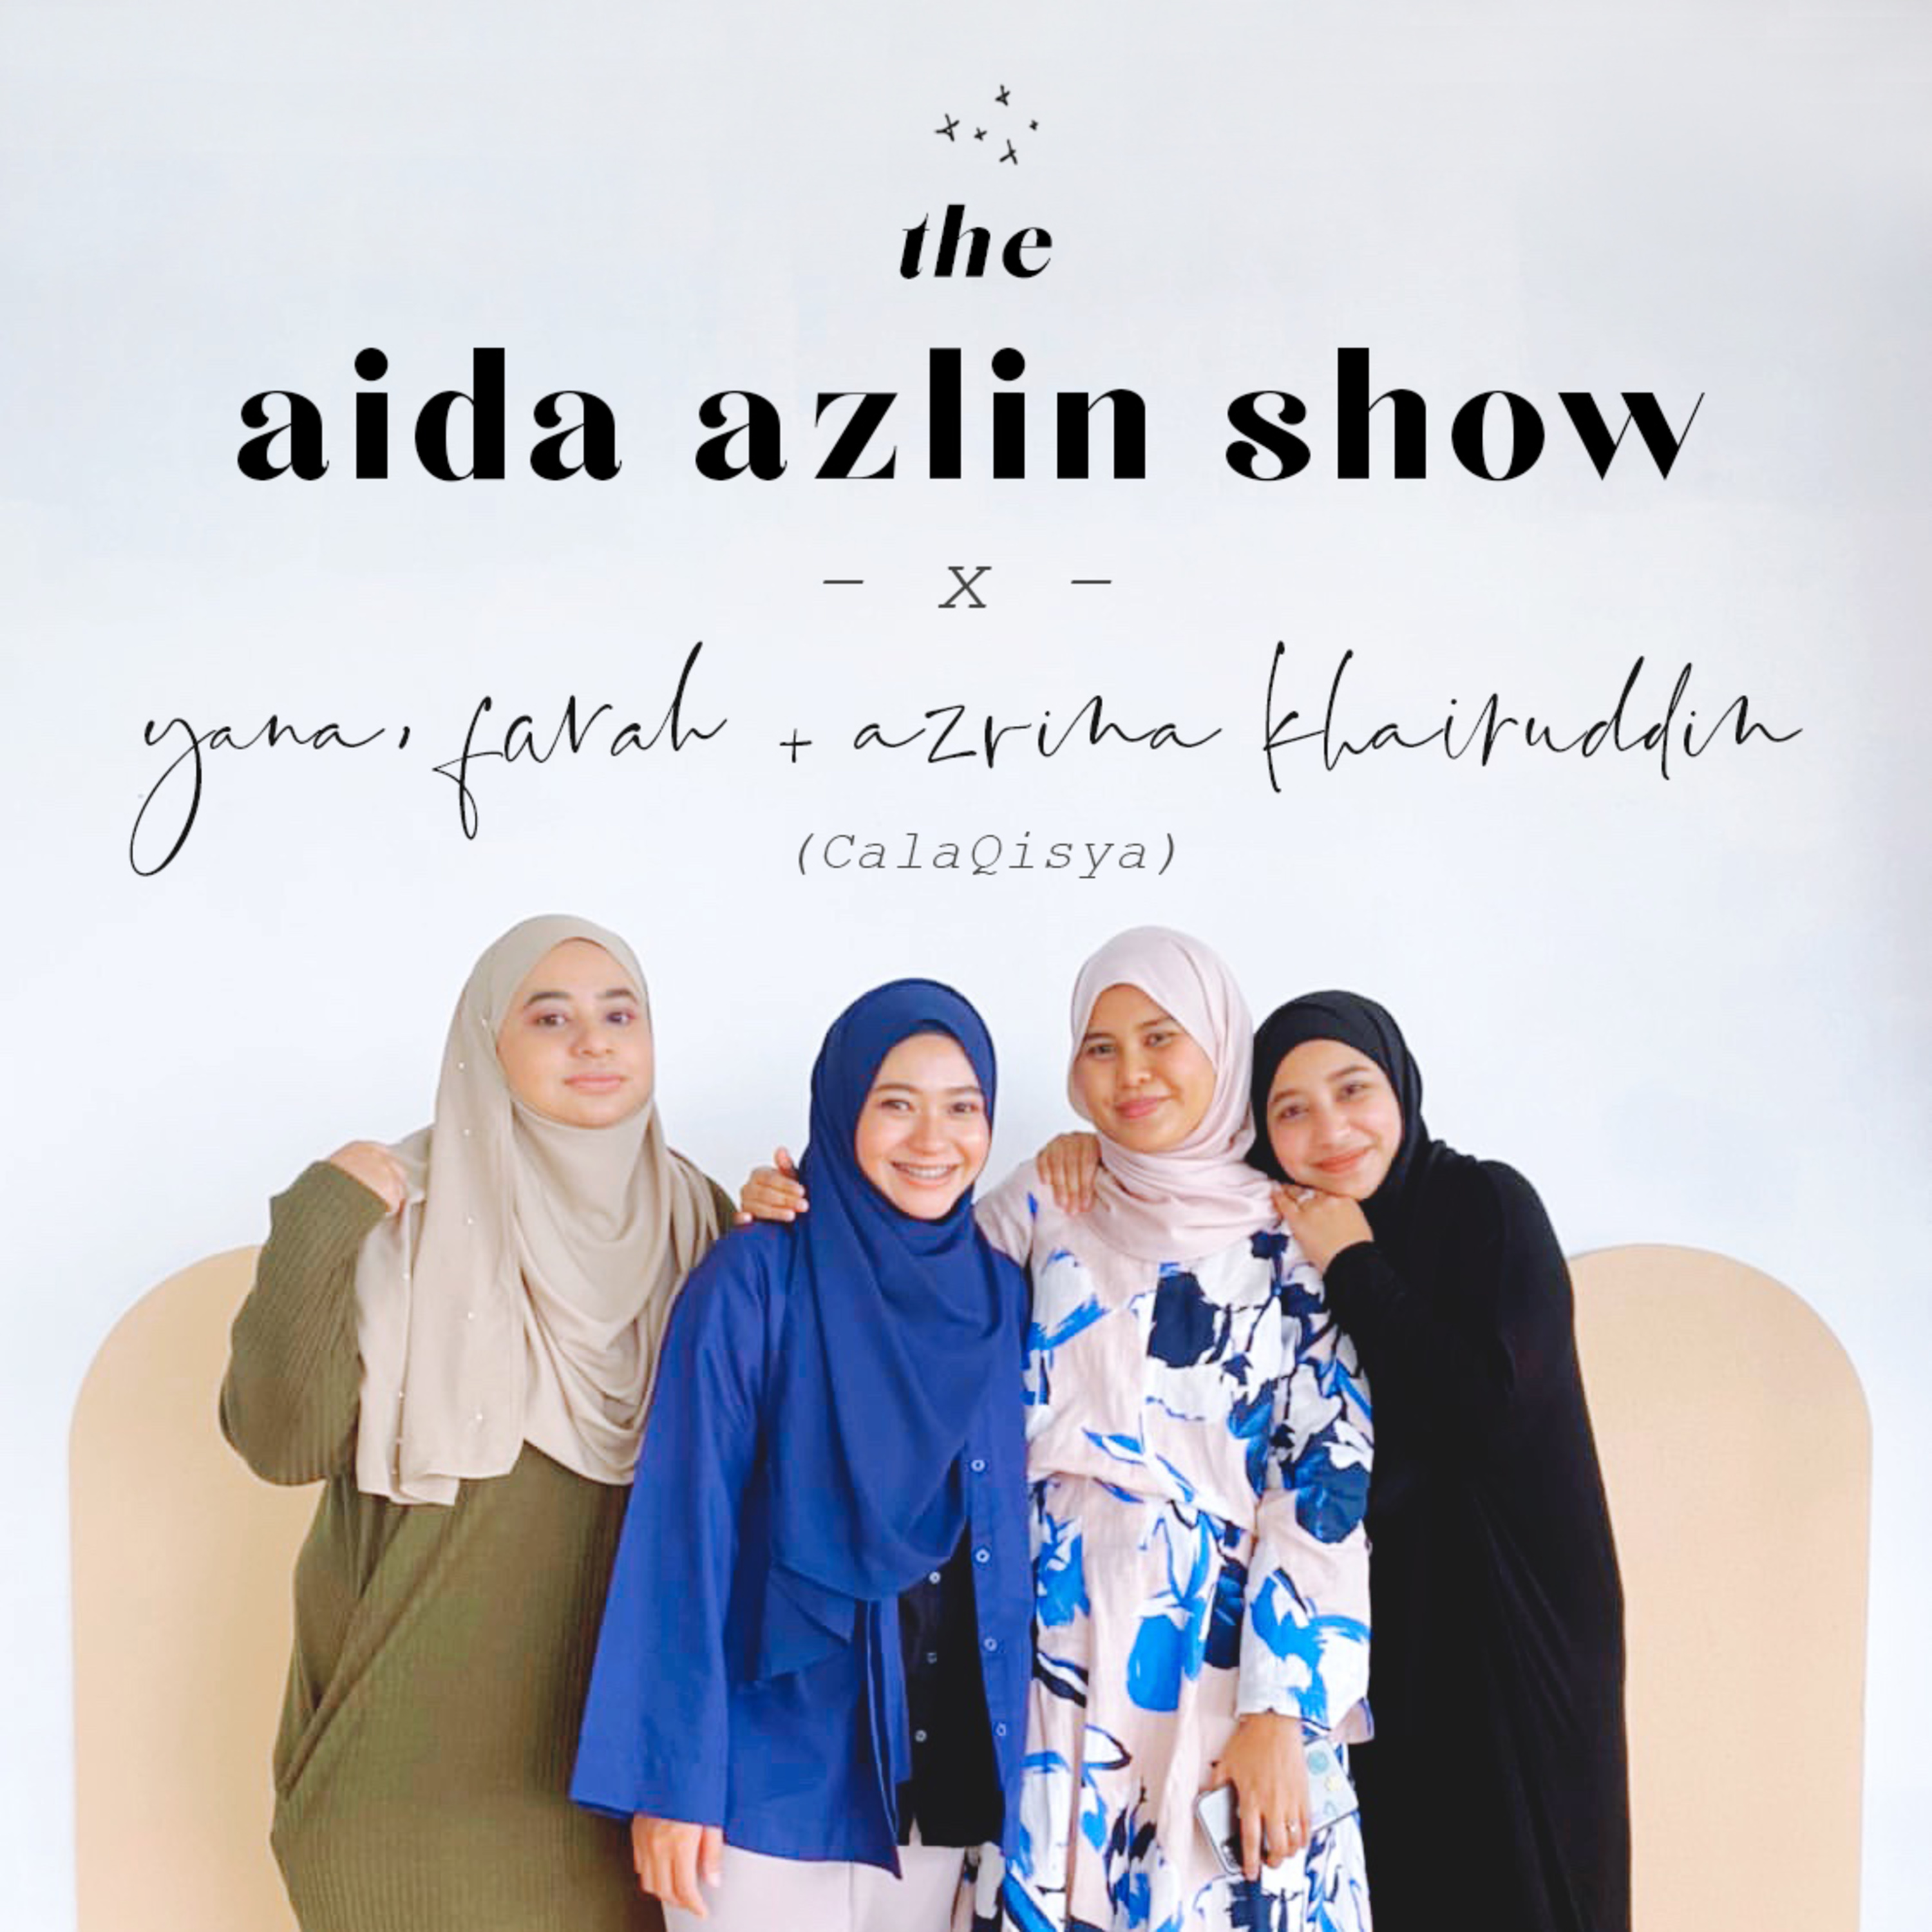 Yana, Farah + Azrina Khairuddin (CalaQisya): On humble beginnings, sisterly synergy, zombie apocalypse (??!!) and more!